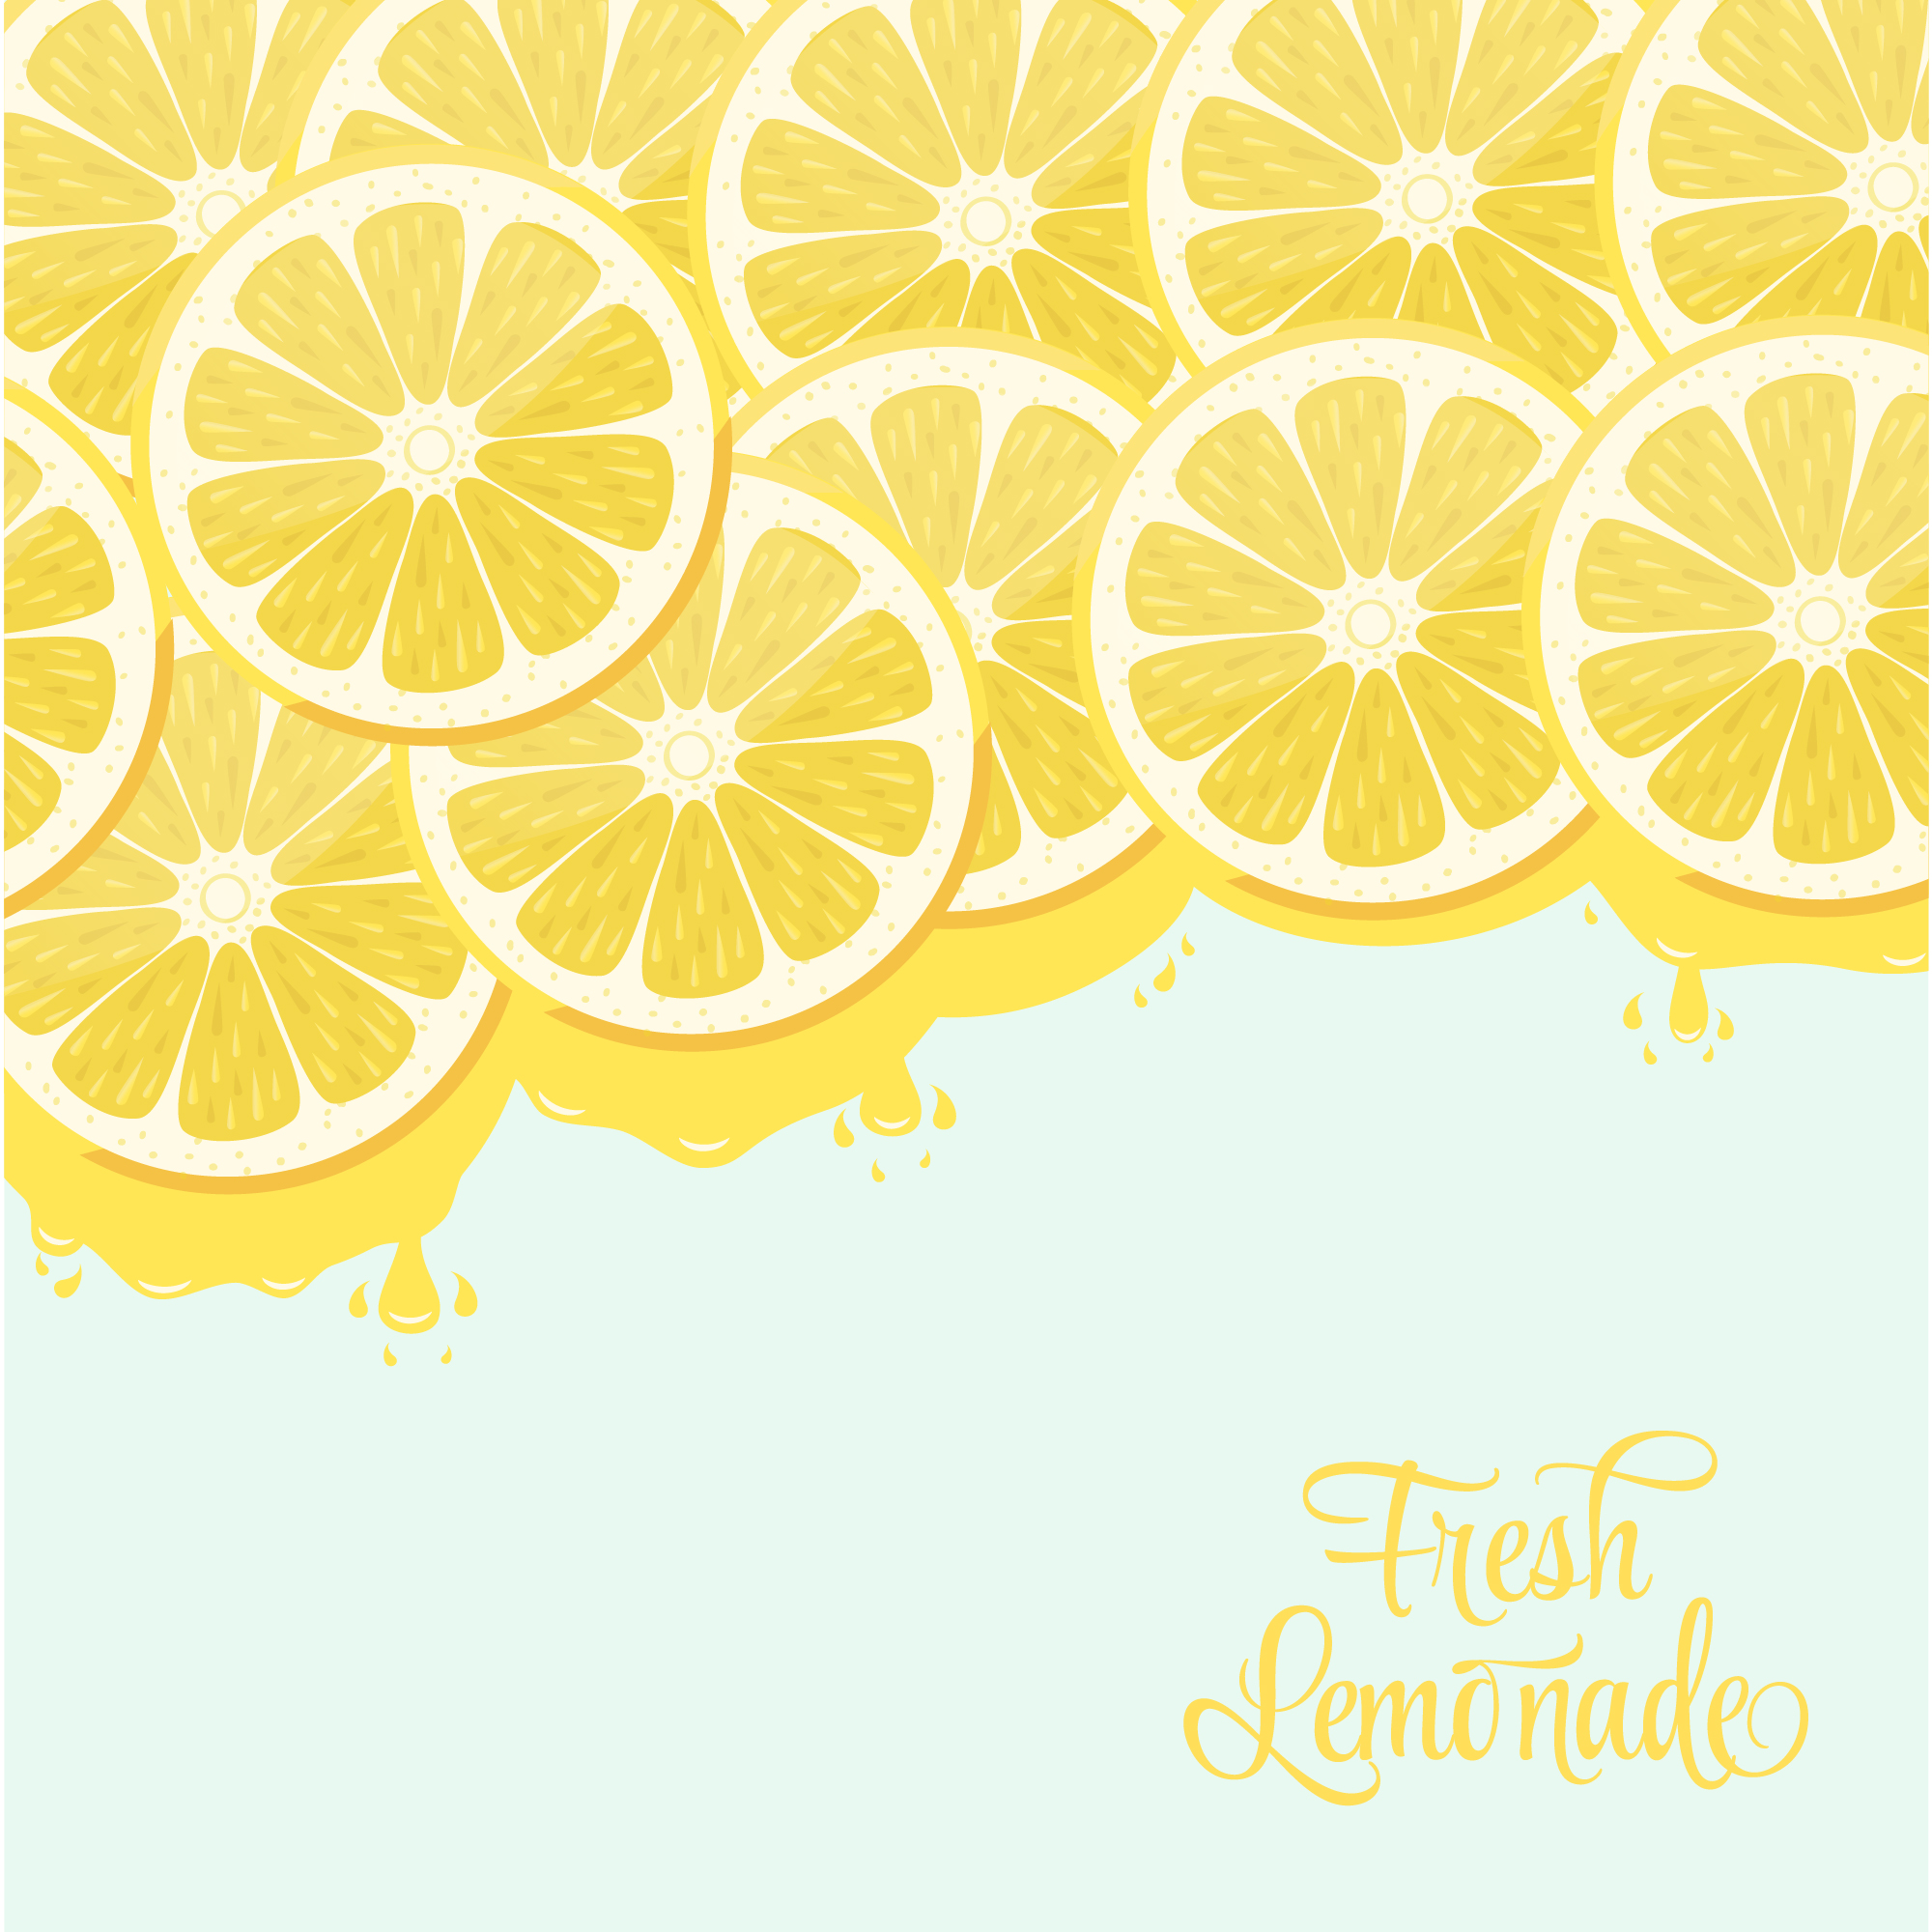 Lemonade design